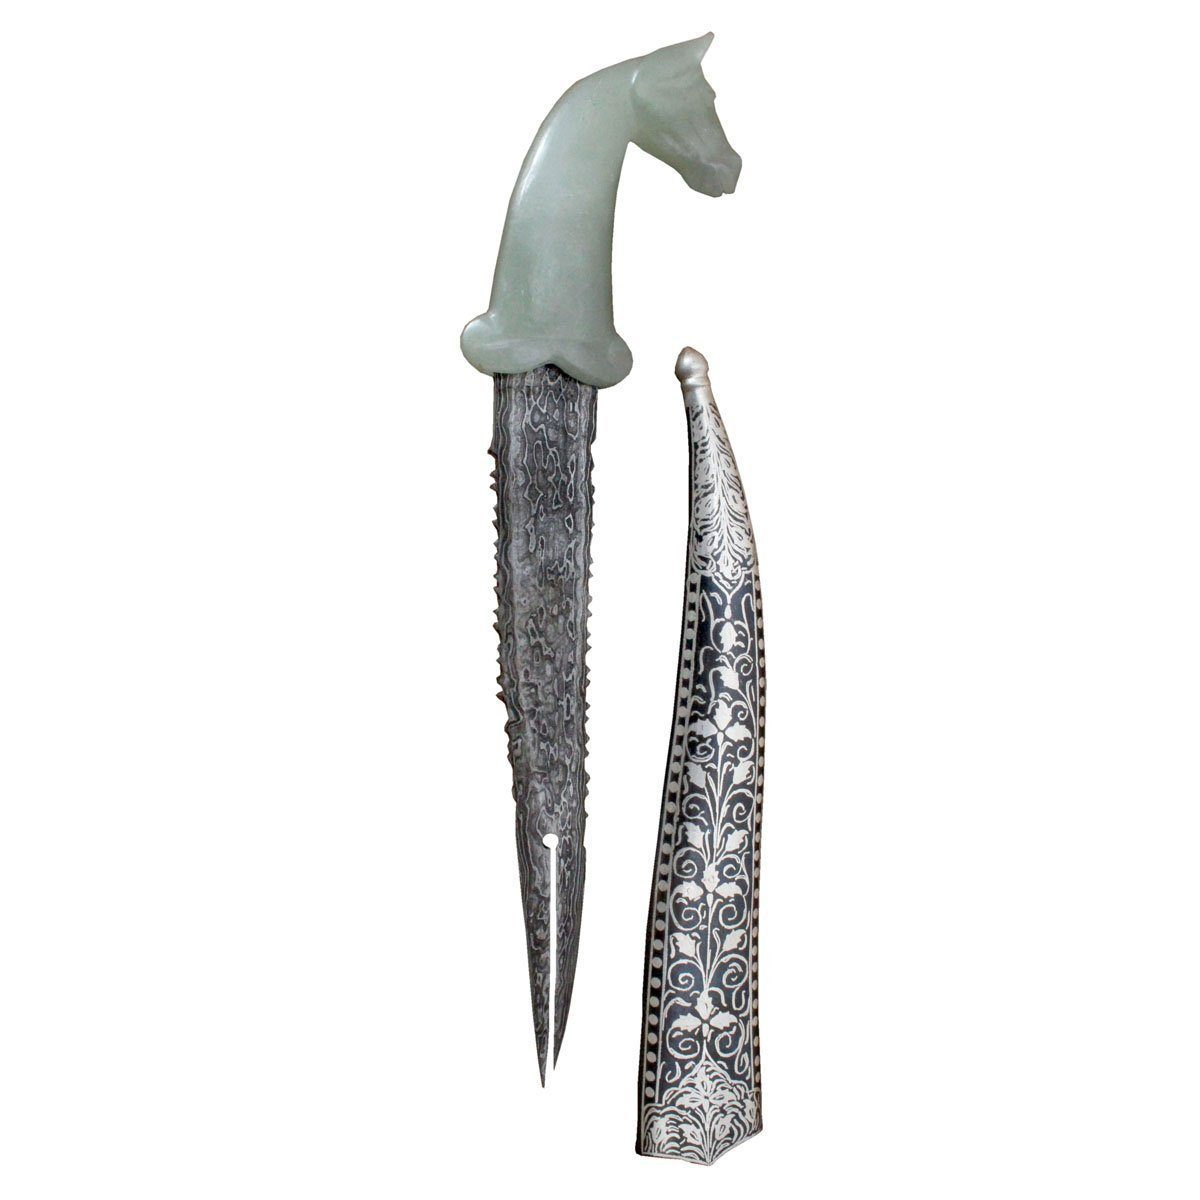 Dagger - Jade Semi Precious Stone Handle With Ancient Medieval Antique Crusader Khanjar Dagger - 10 Inches